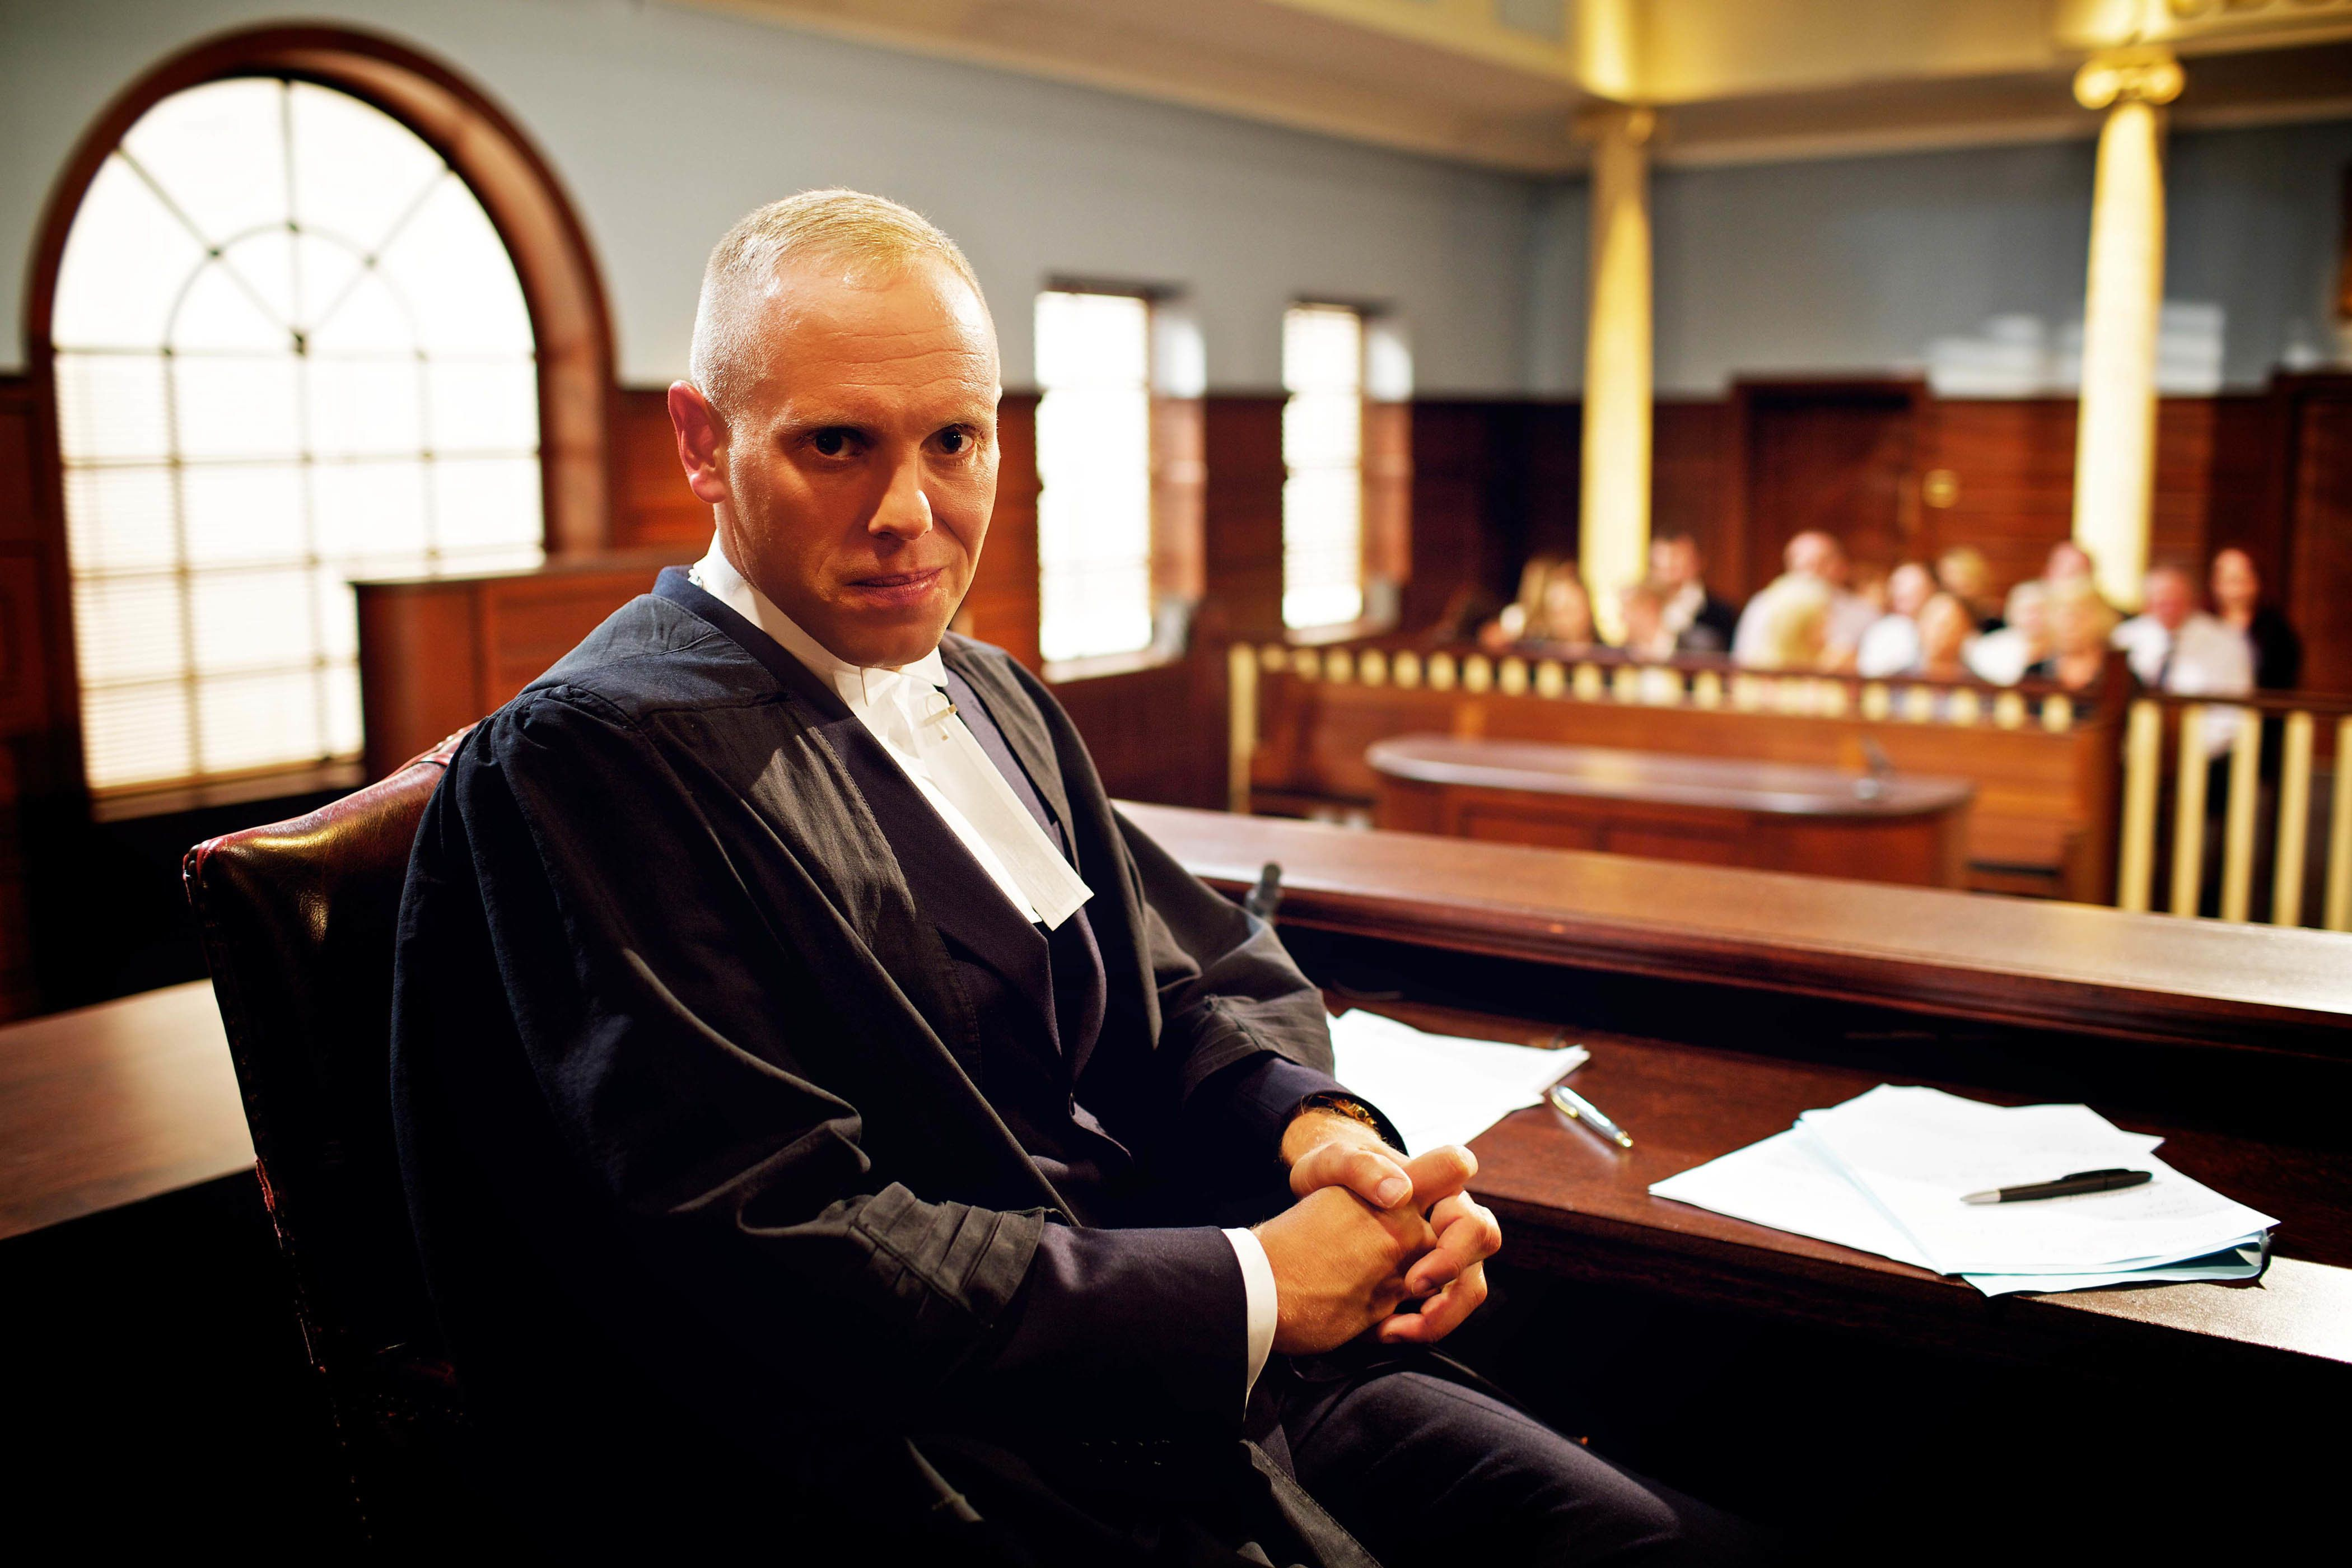 Judge Rinder, aka Robert